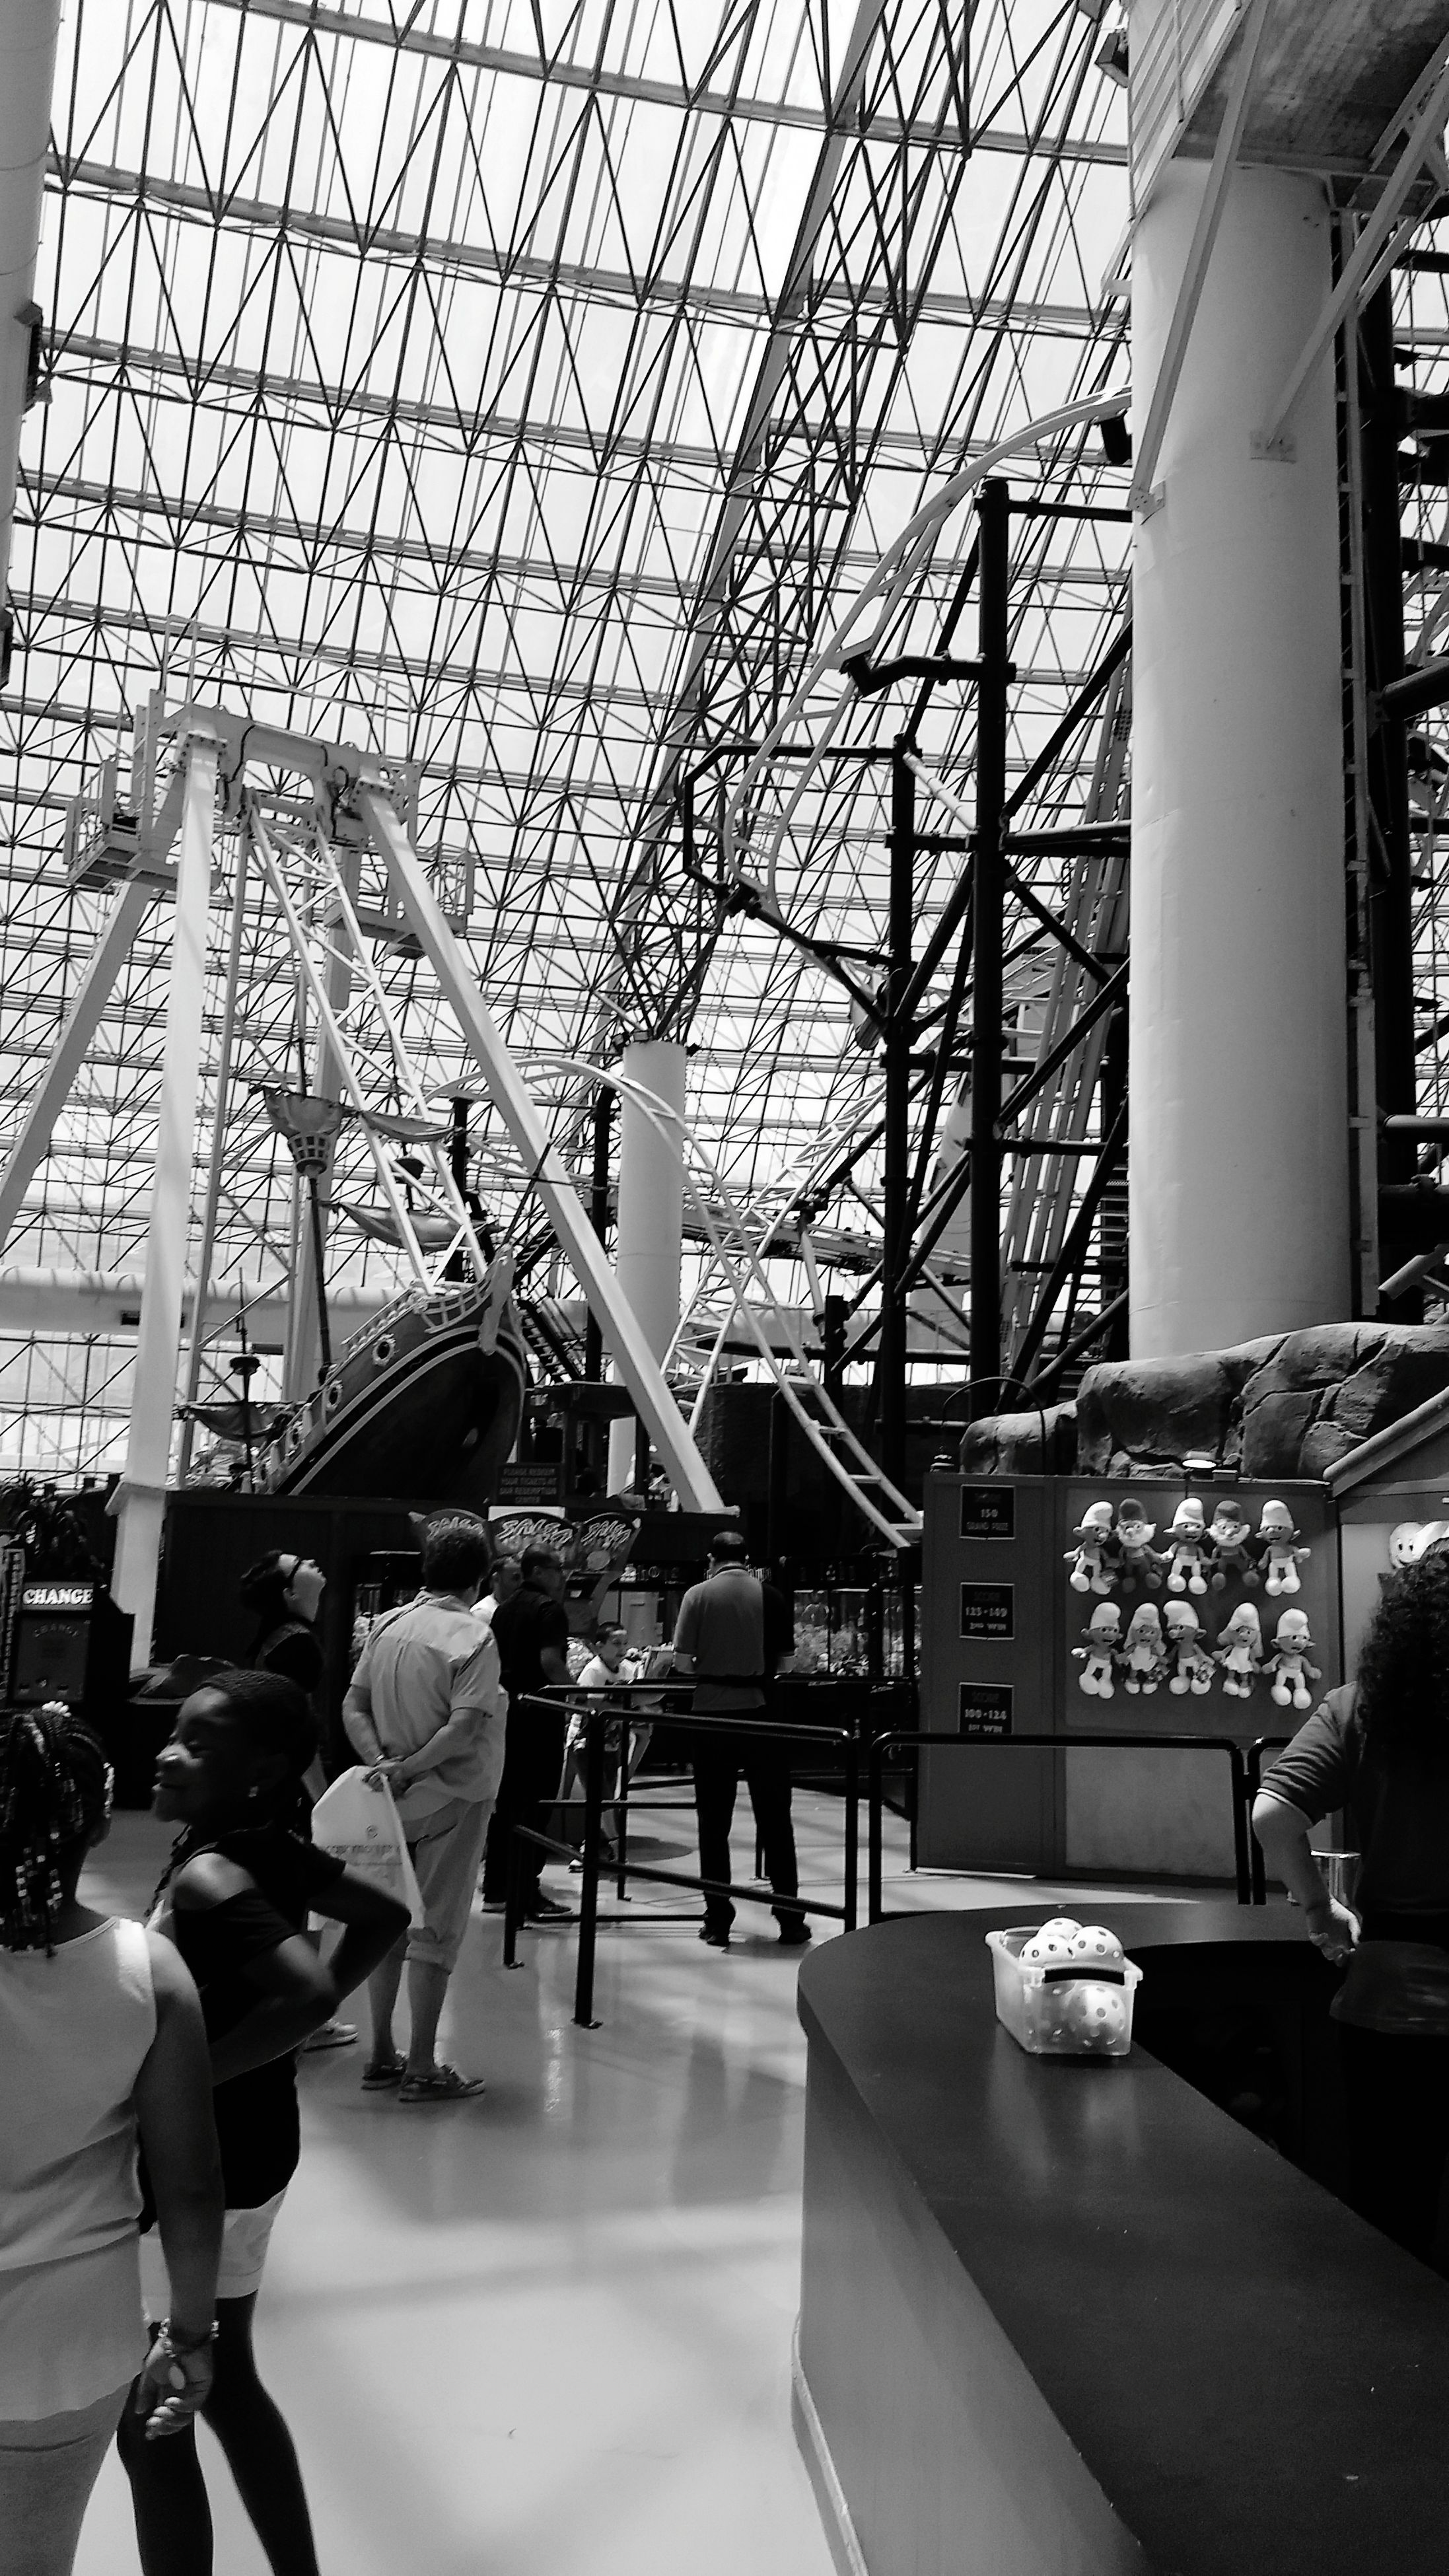 indoors, real people, leisure activity, built structure, women, large group of people, men, lifestyles, architecture, day, people, adult